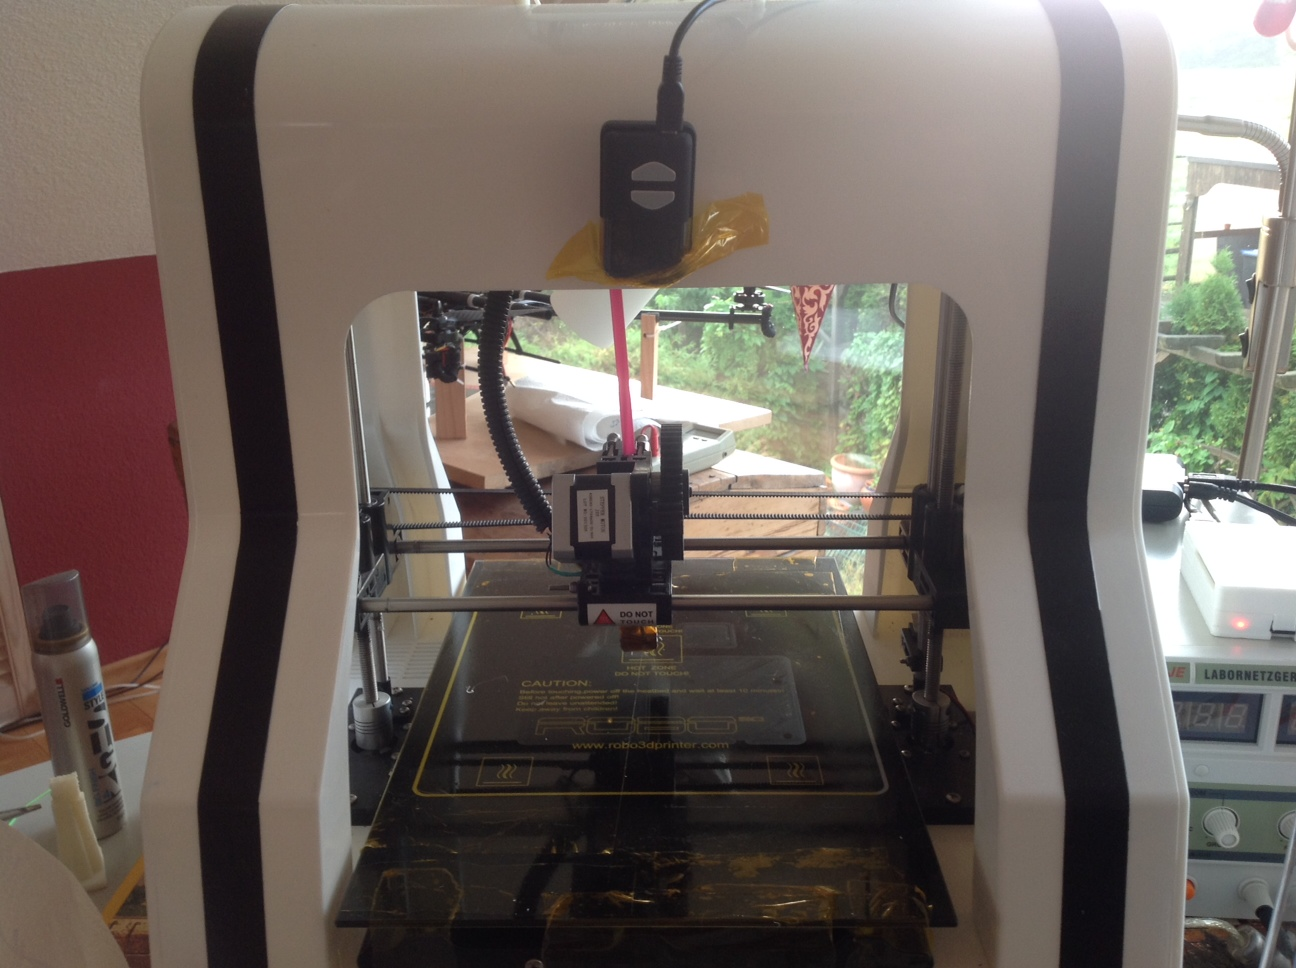 Web enabled Robo3d using Raspberry Pi and Octoprint | ROBO